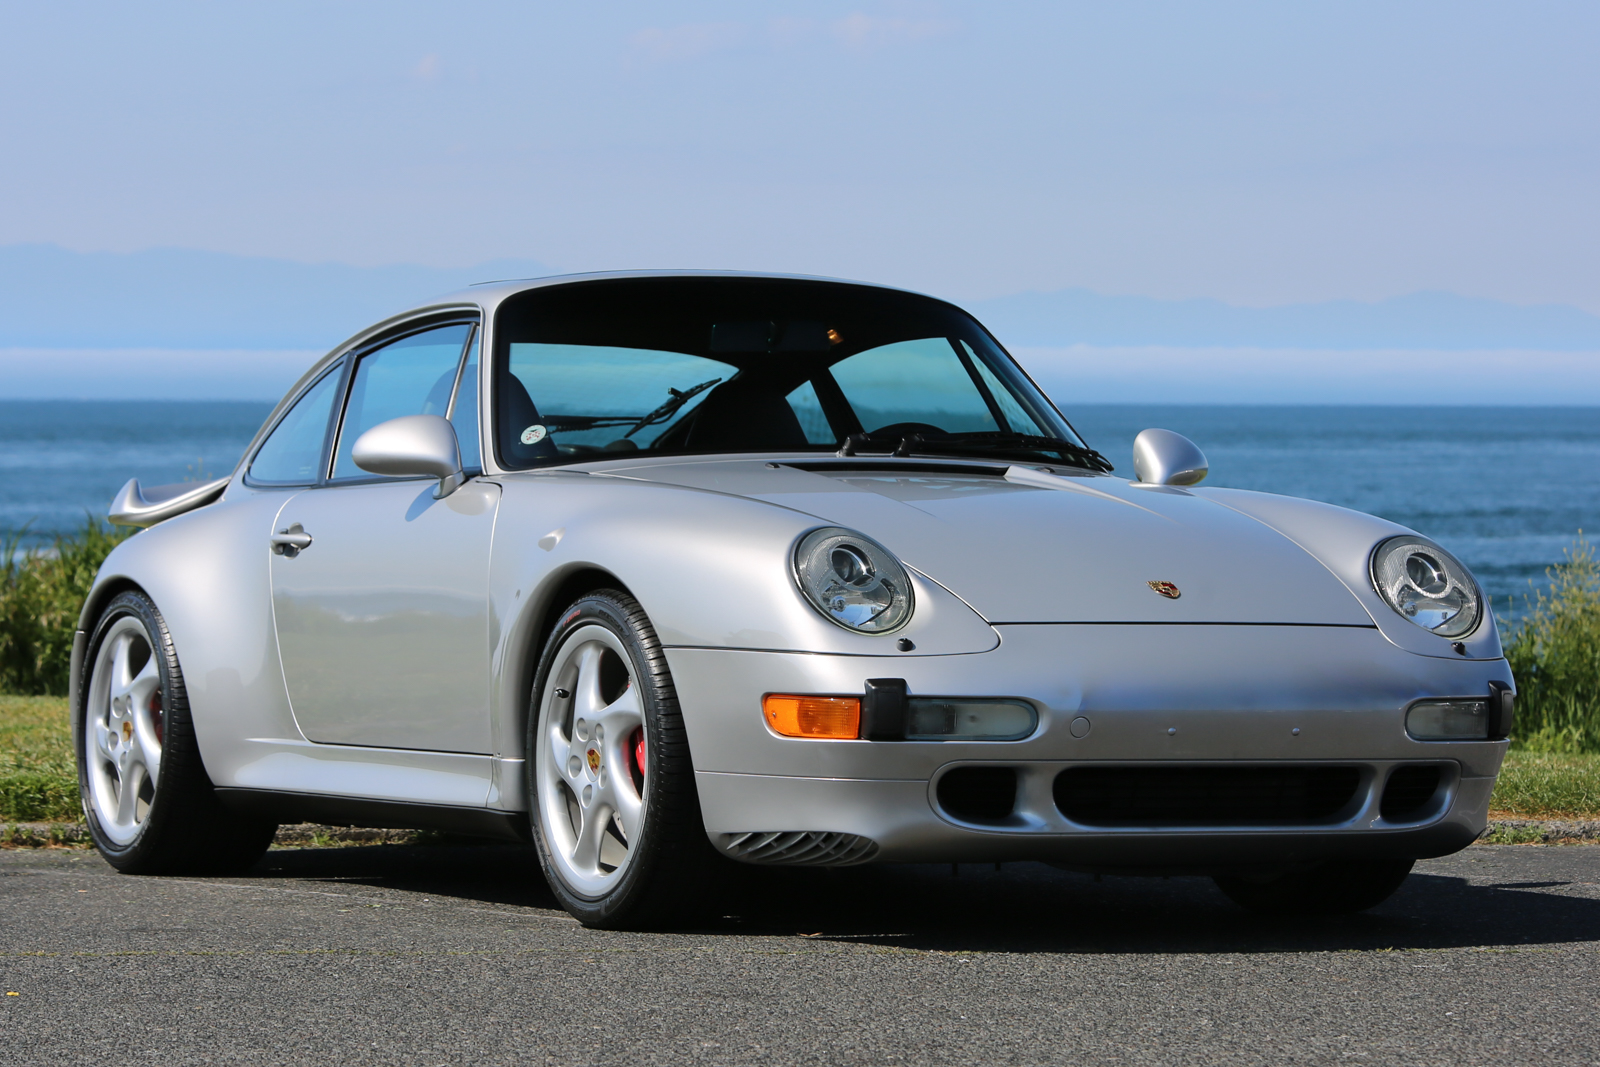 1997 porsche 911 993 turbo for sale silver arrow cars ltd. Black Bedroom Furniture Sets. Home Design Ideas